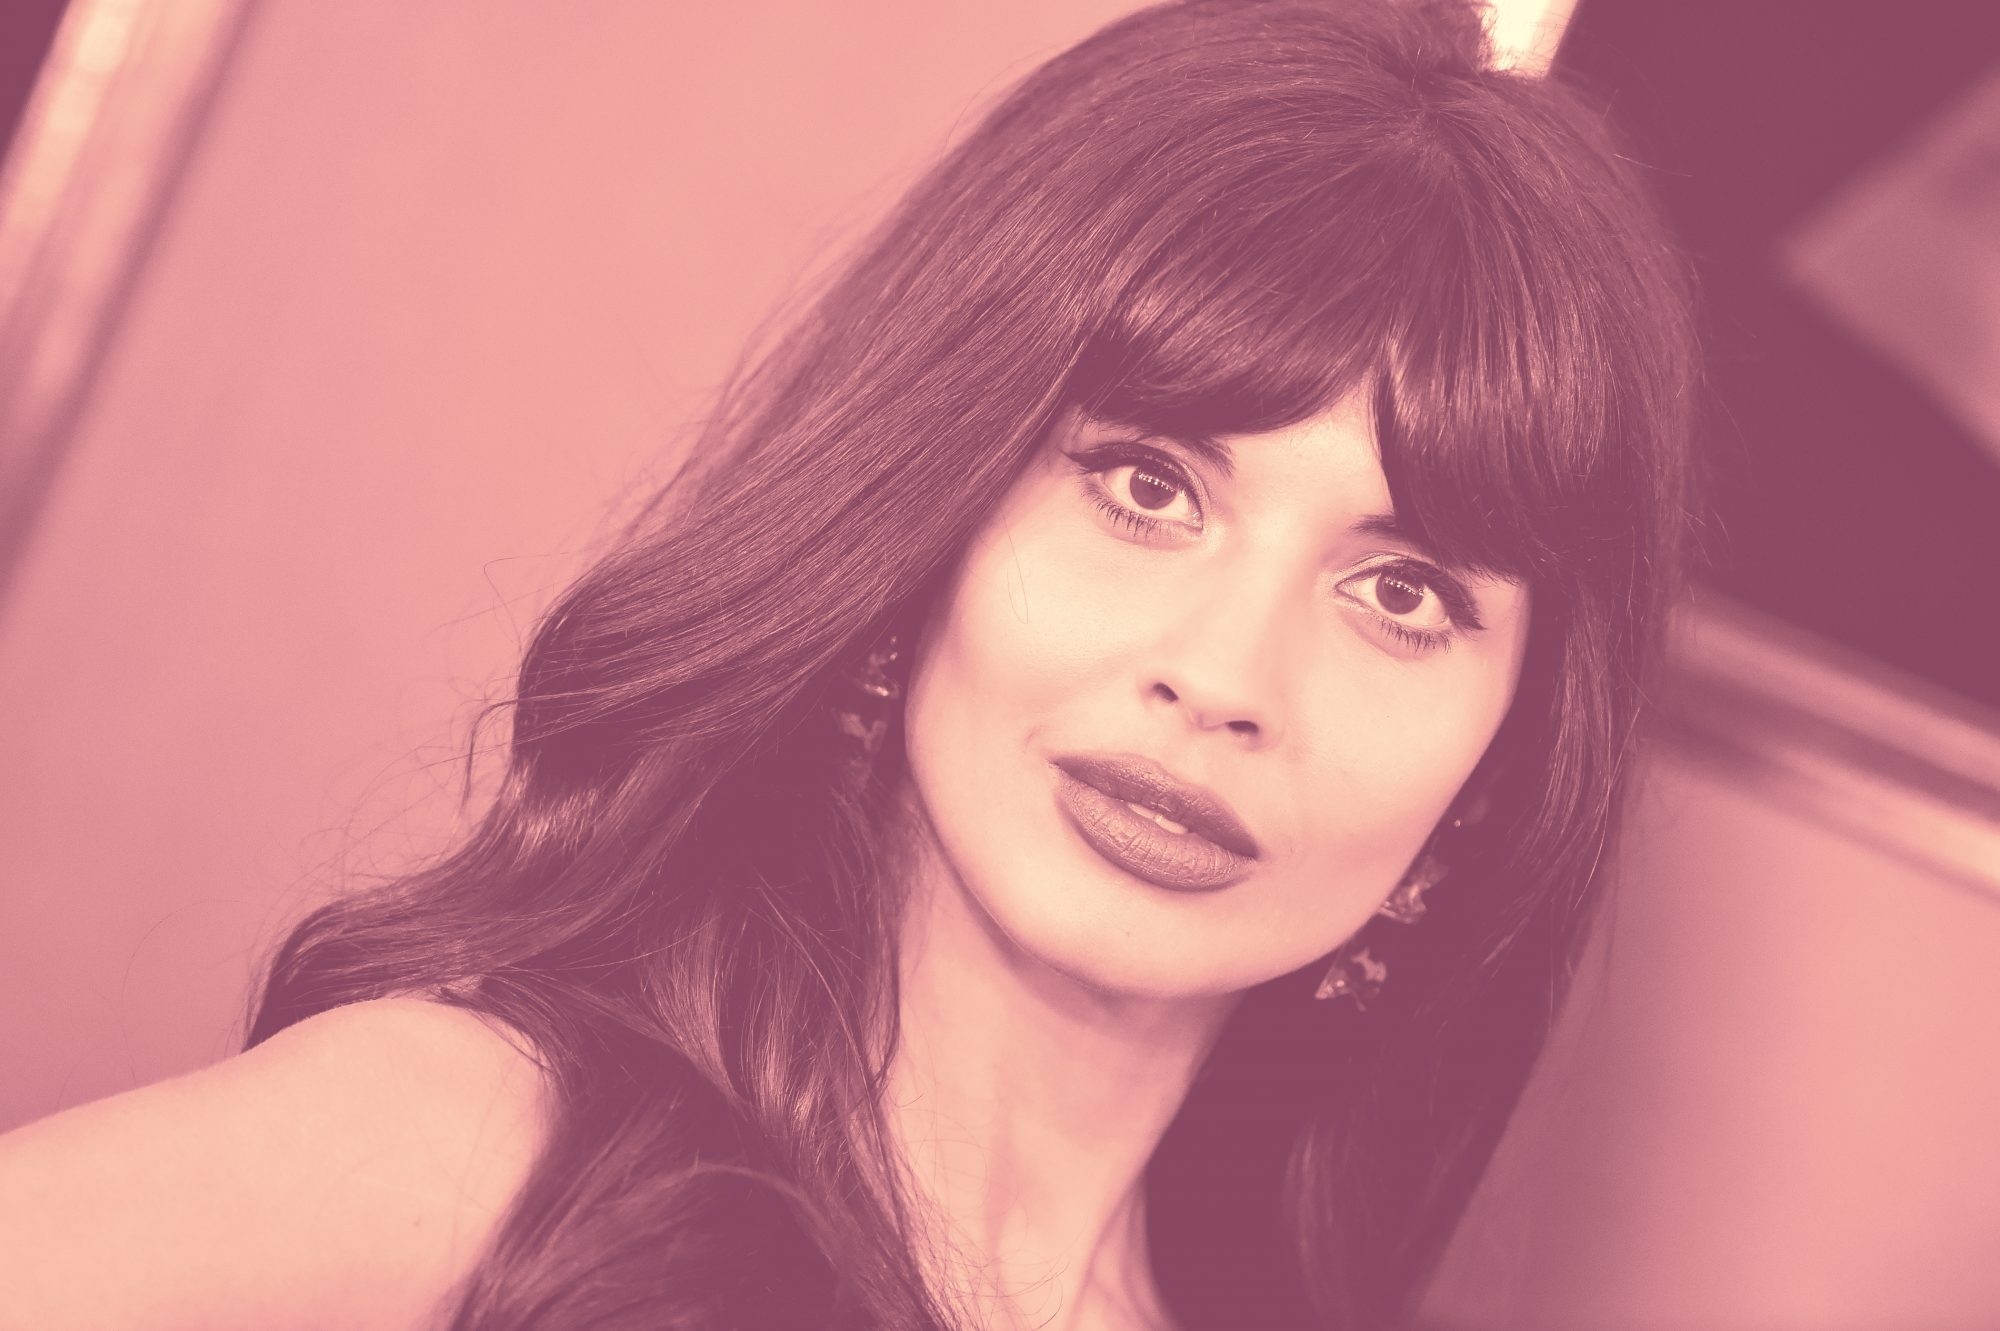 Jameela Jamil Slams Diet Culture and Quick-Fix Weight Loss on Social Media